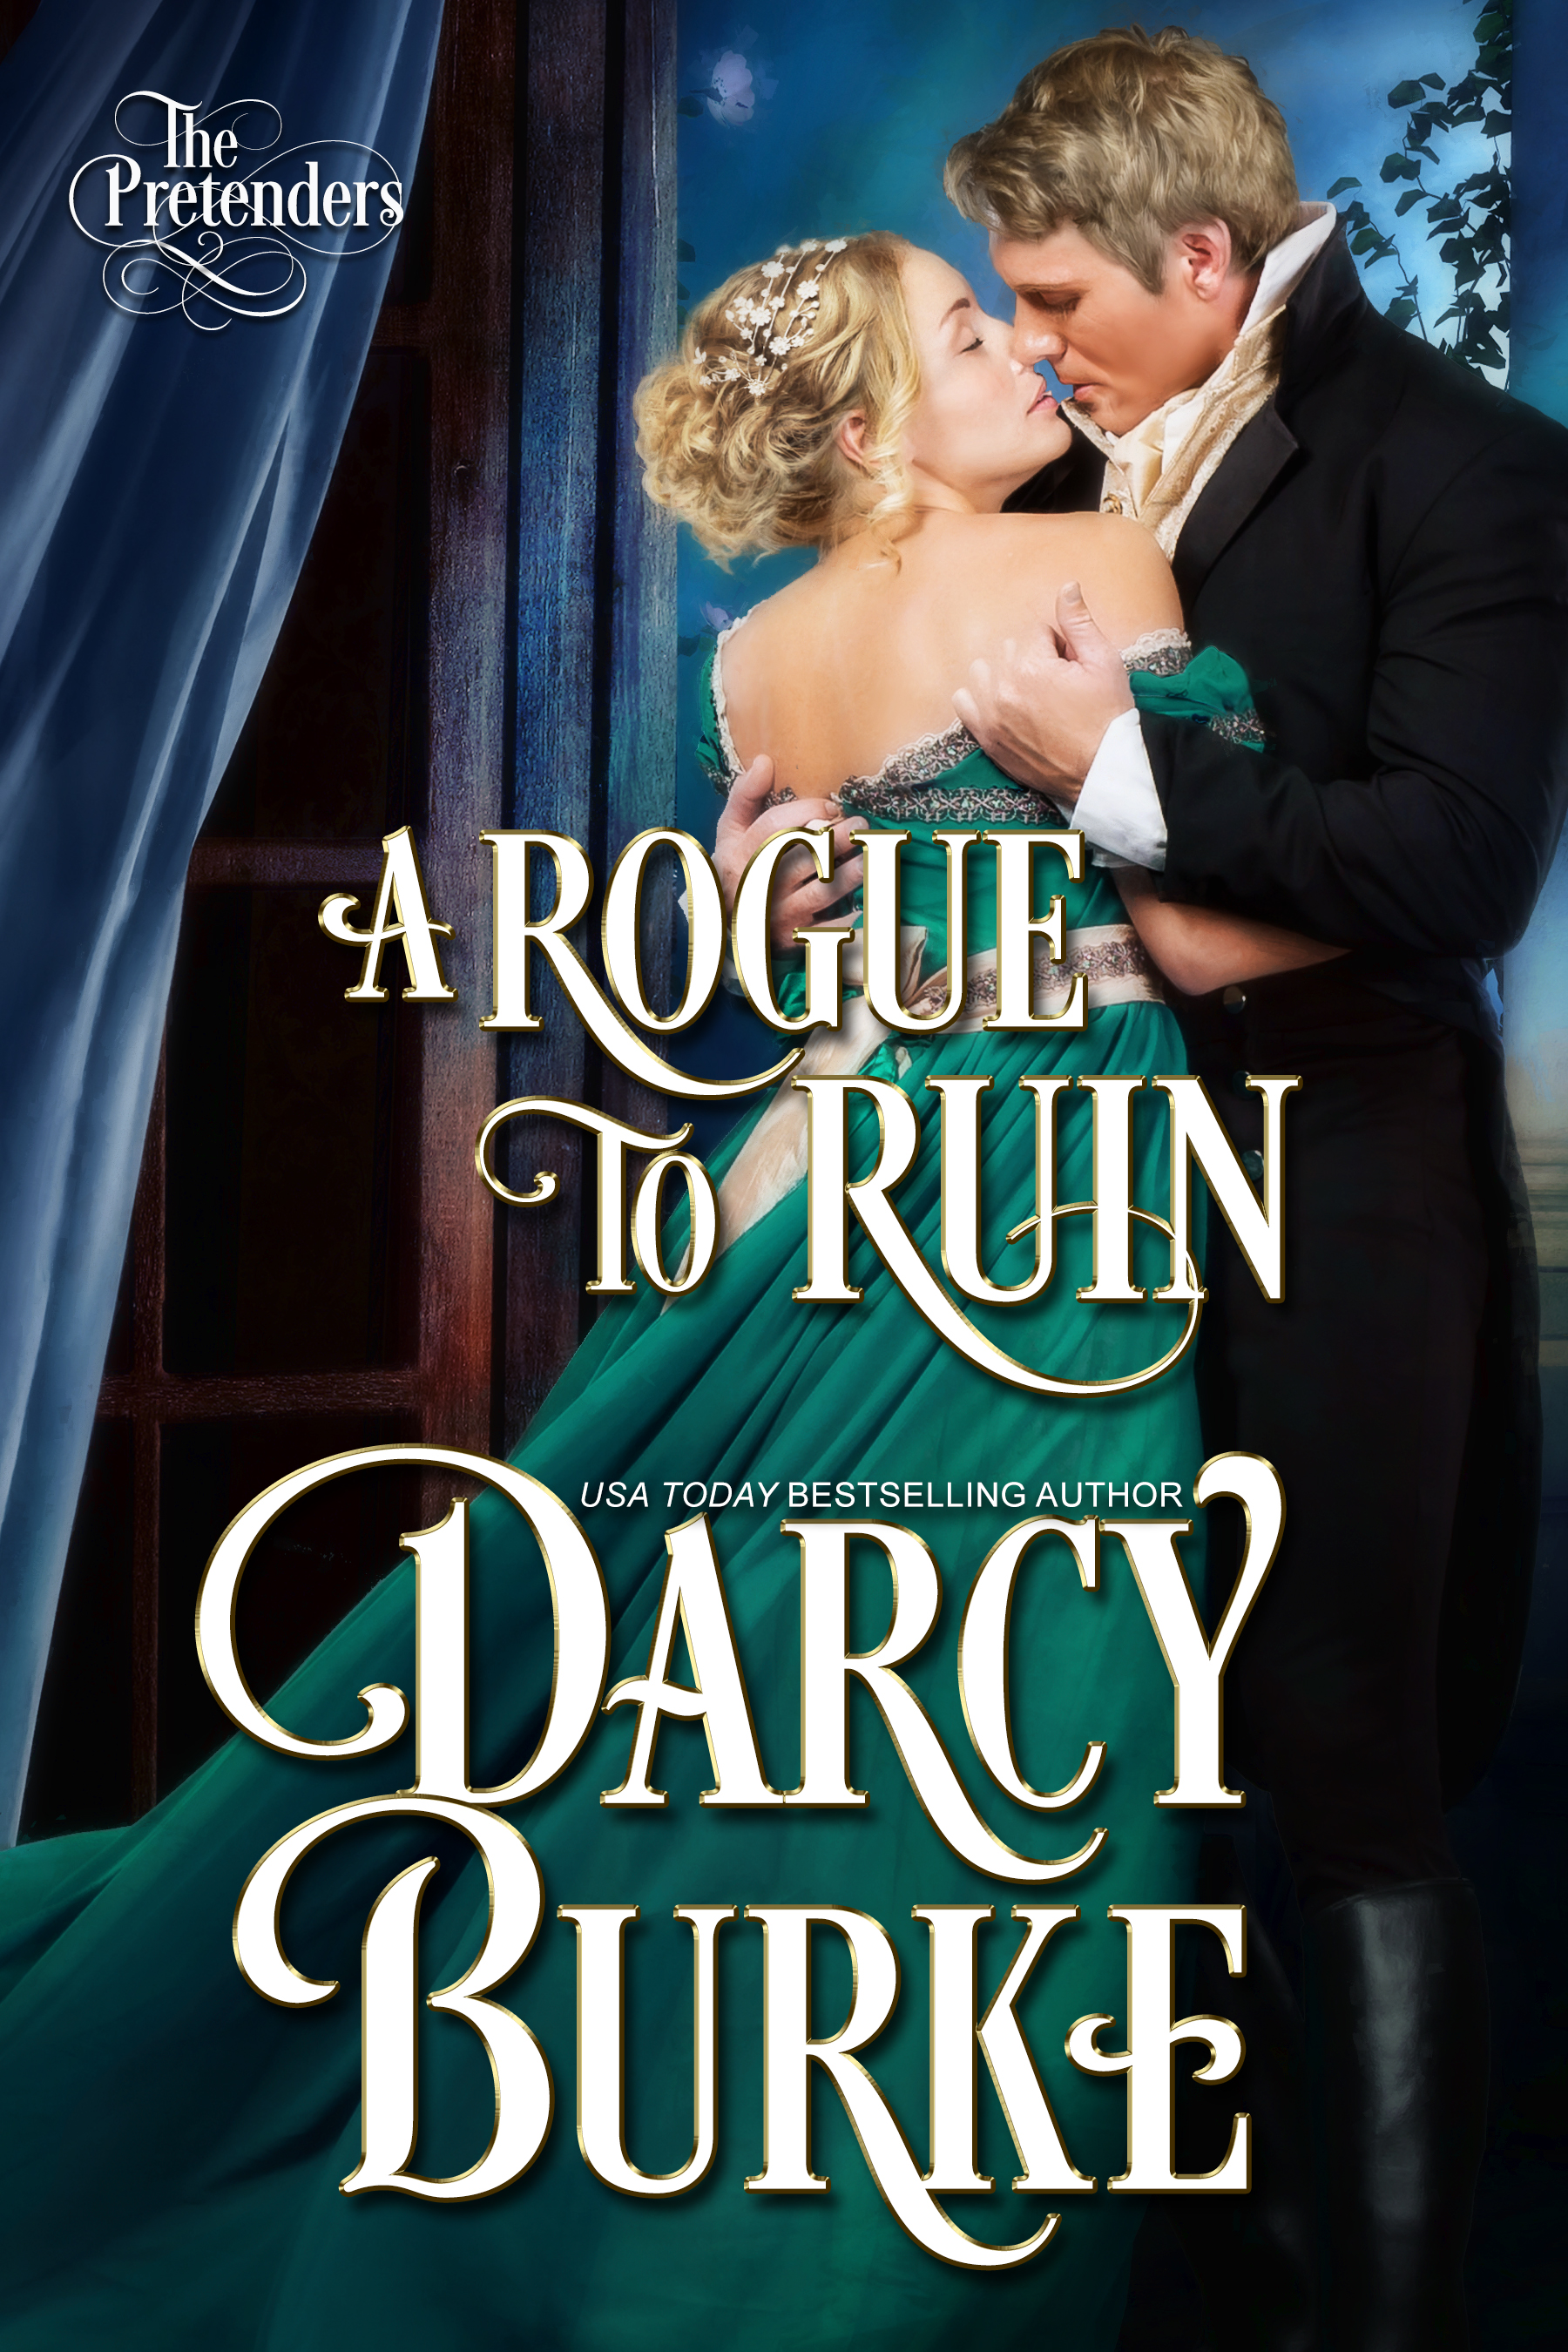 A Rogue to Ruin (The Pretenders #3)